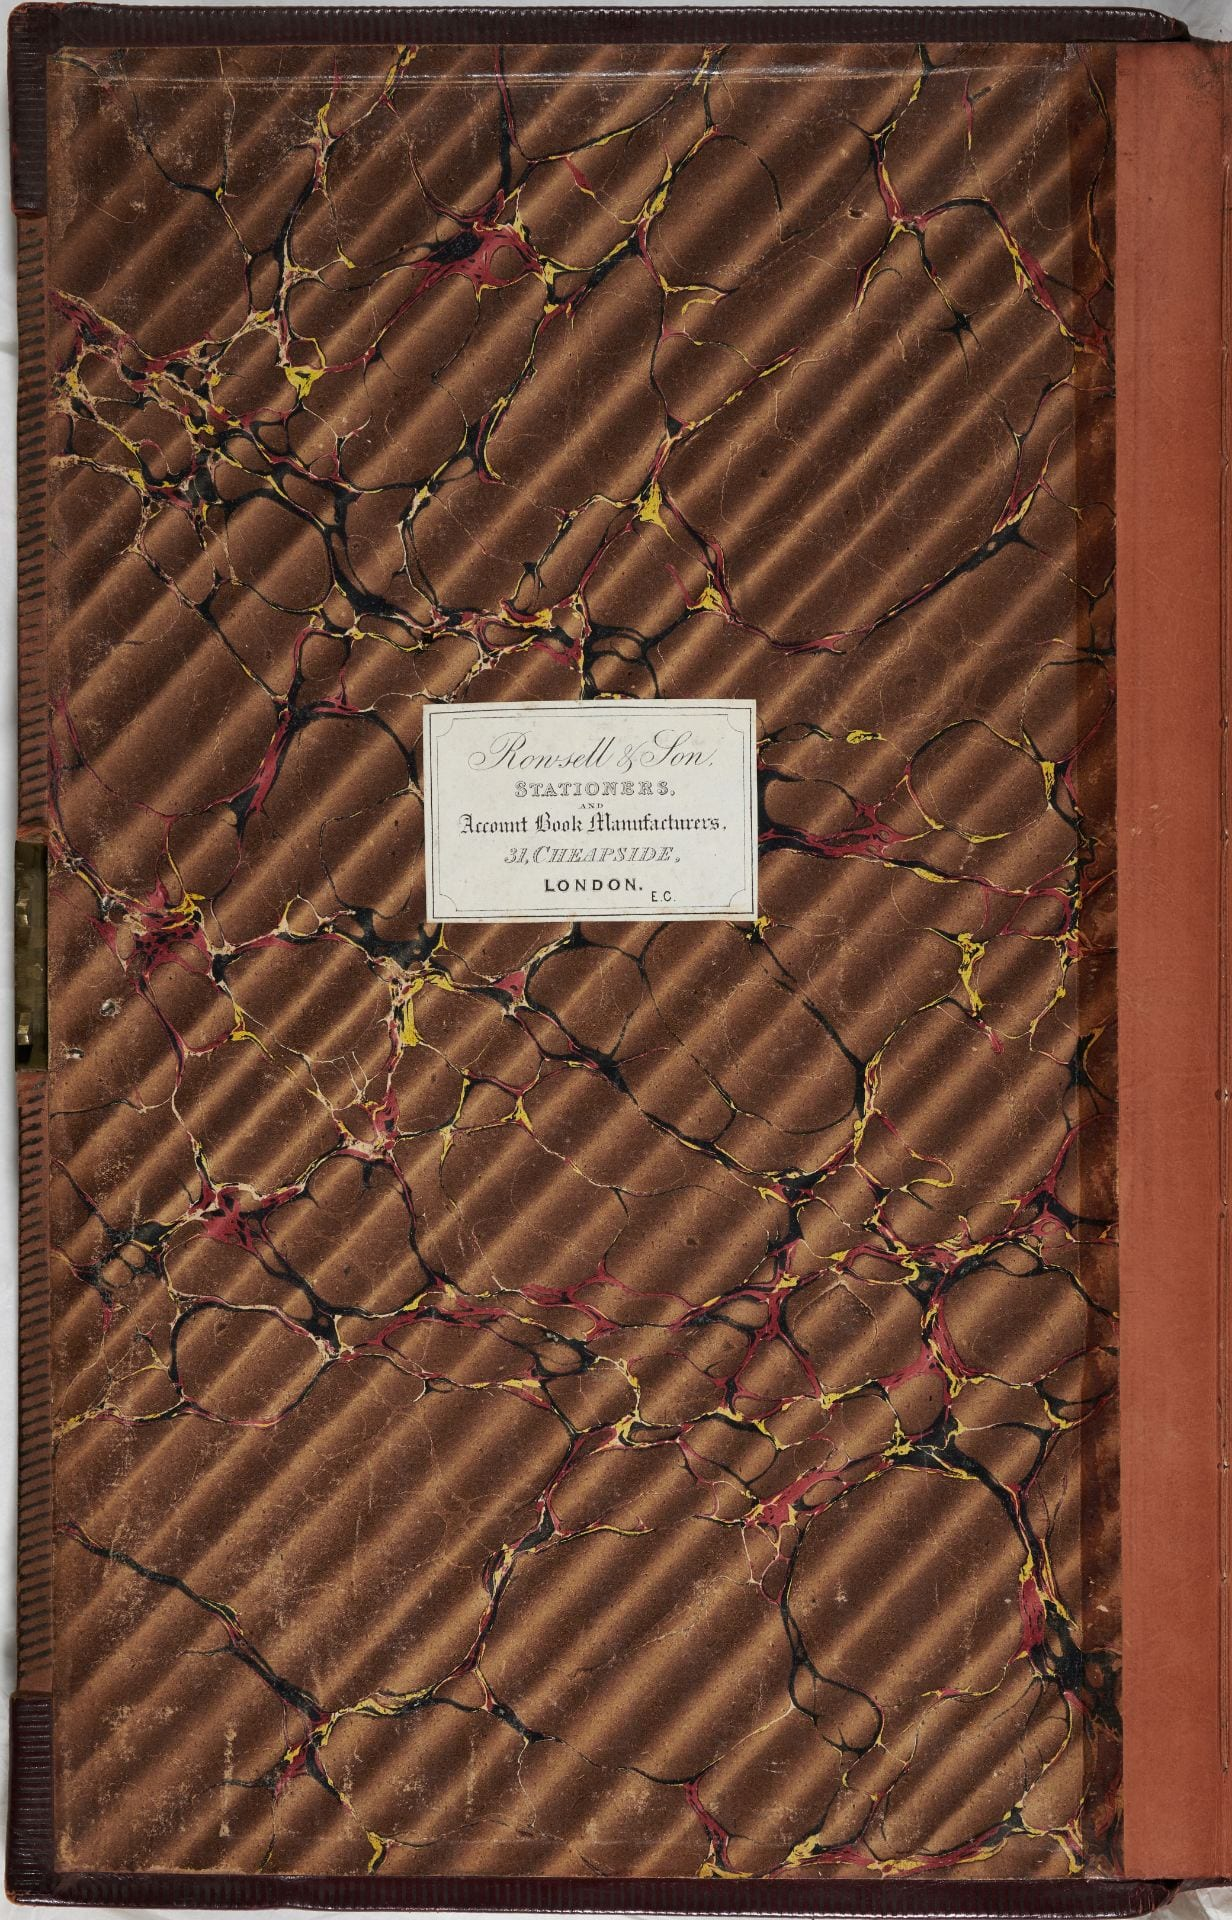 "Financial ledger first endpaper of brown marbled paper.. Label reads ""Ronsell & Son Stationers and Account book manufacturers. 31 Cheapside London EC."